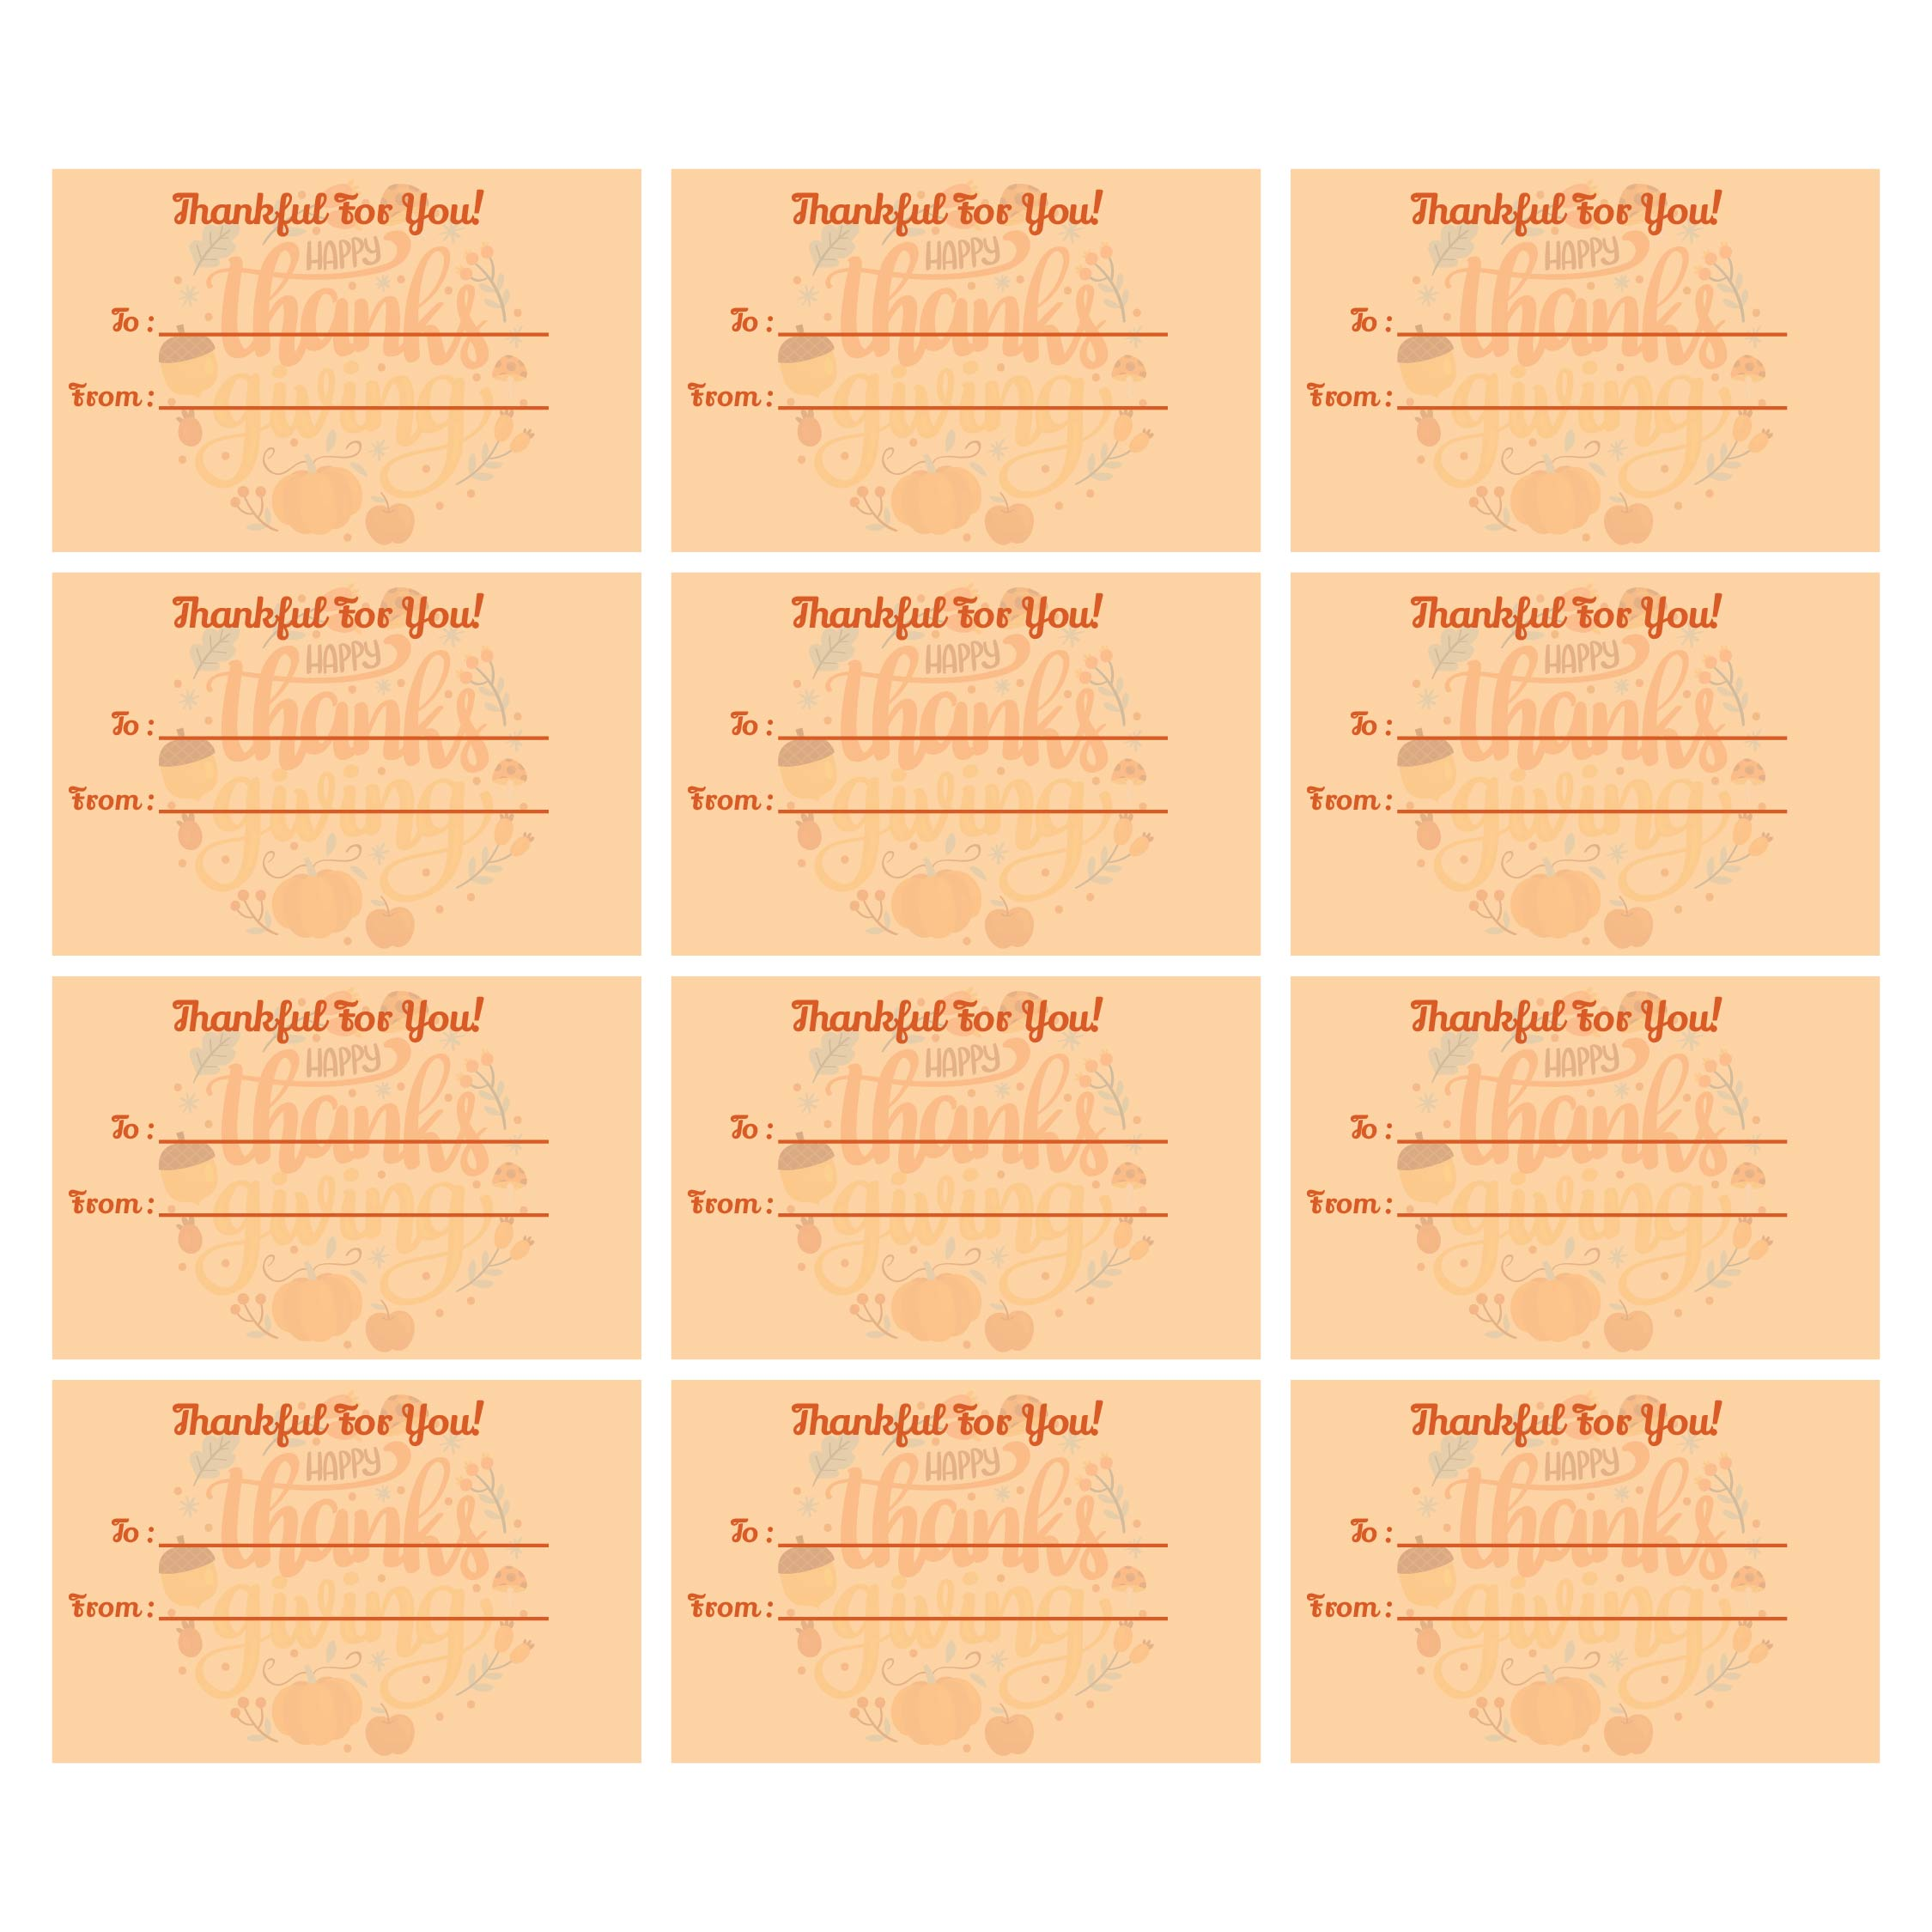 5 Images of Free Printable Thanksgiving Tags